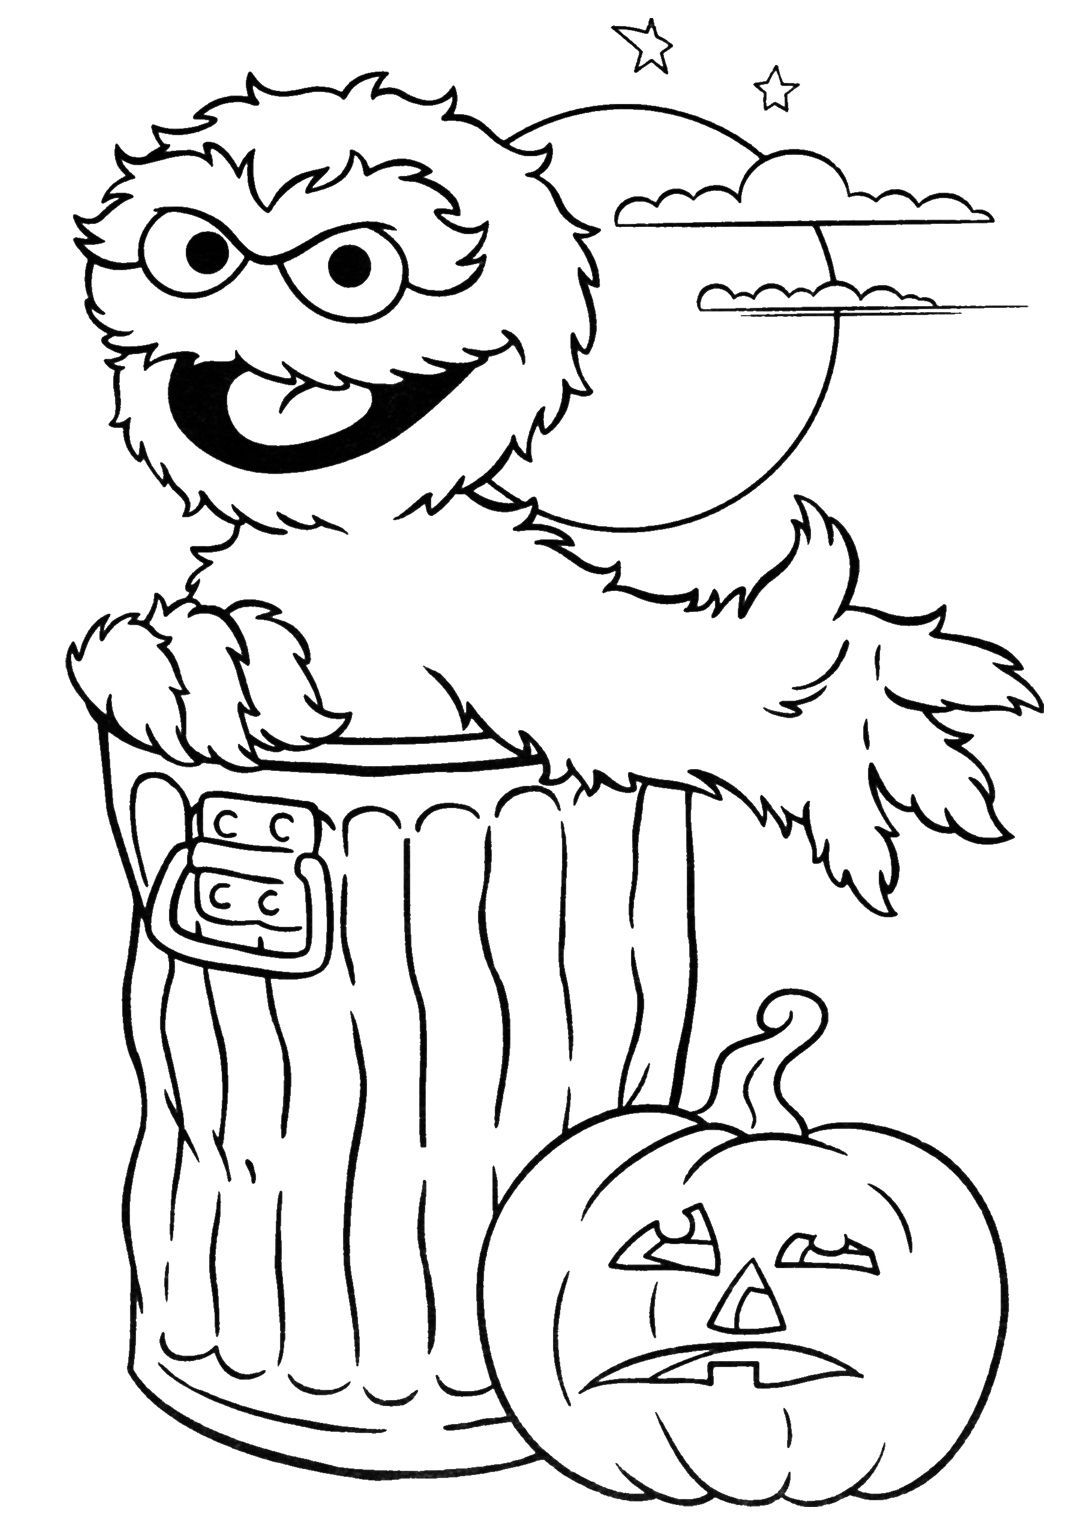 Free Printable Halloween Coloring Pages For Kids C0lor